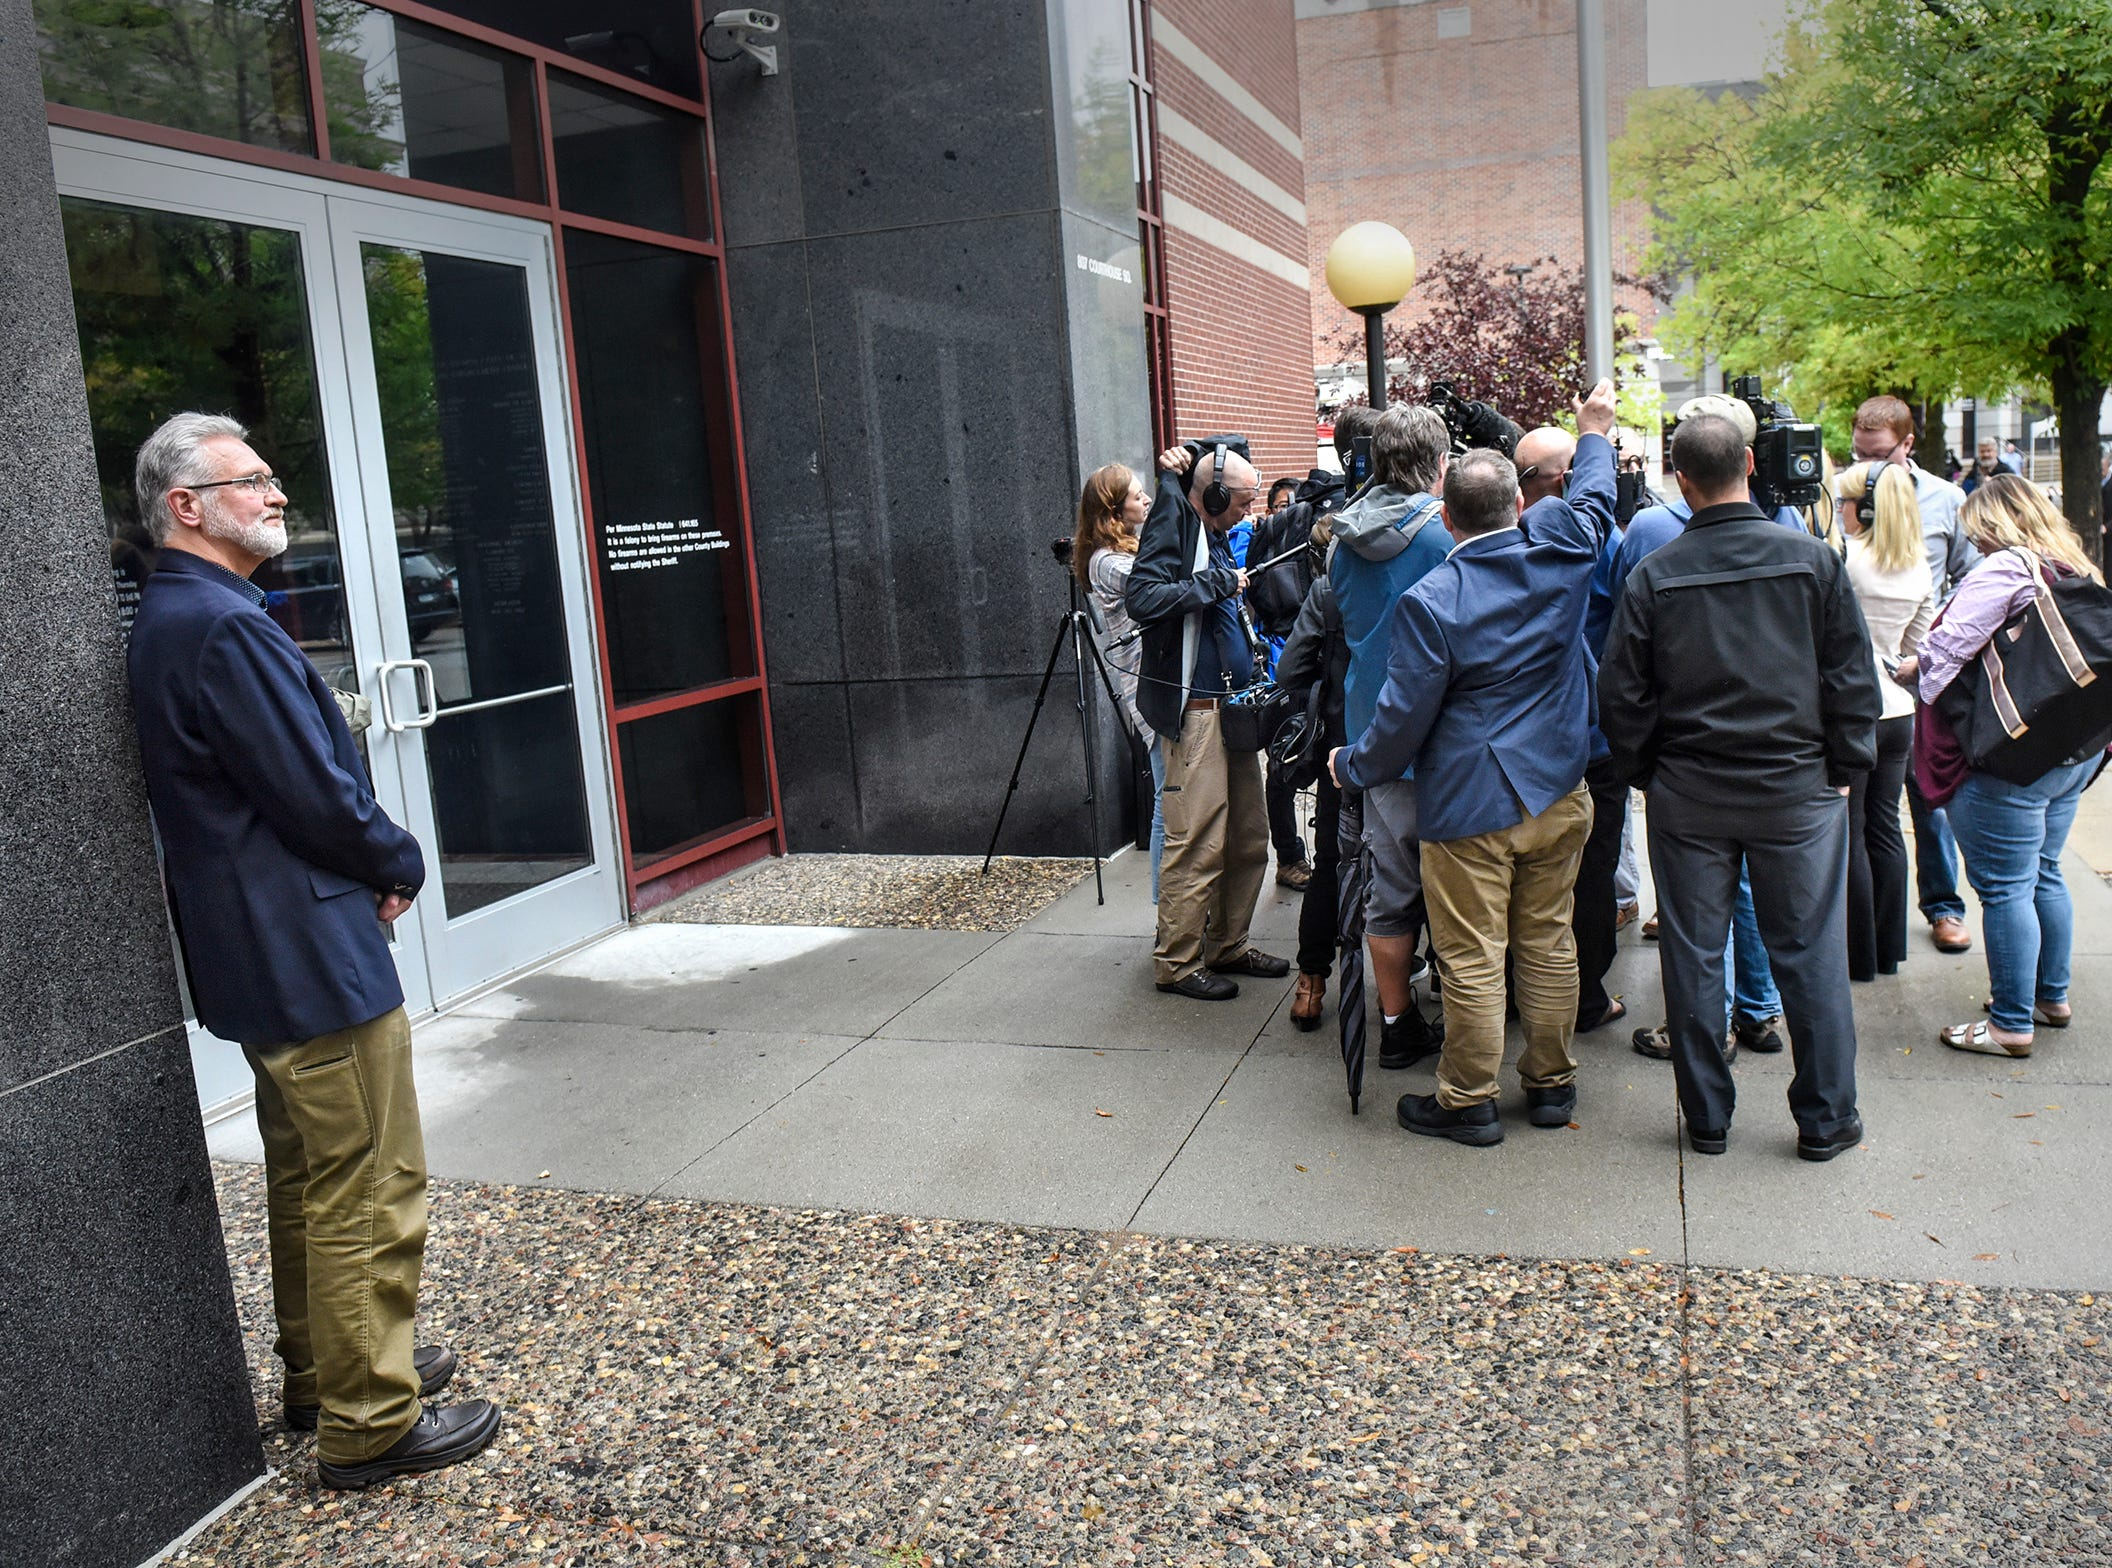 Jerry Wetterling stands alone as reporters circle around former FBI agent Al Garber following a press conference for the release of investigative files in the Jacob Wetterling case Thursday, Sept. 20, 2018, in St. Cloud. Wetterling was kidnapped and killed in 1989.